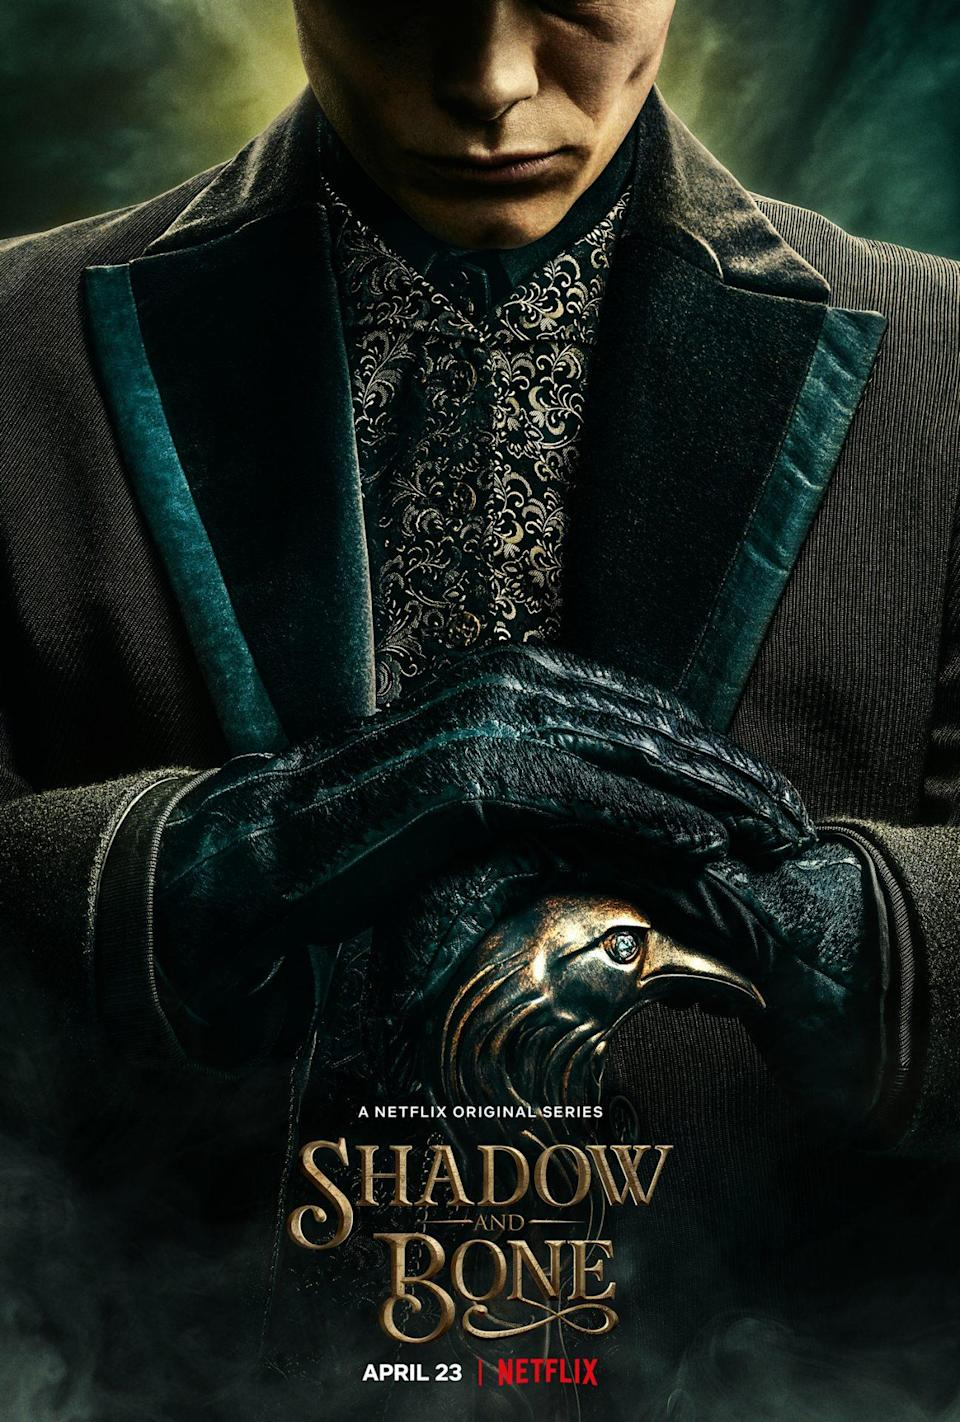 A poster for Shadow and Bone shows Kaz and his cane